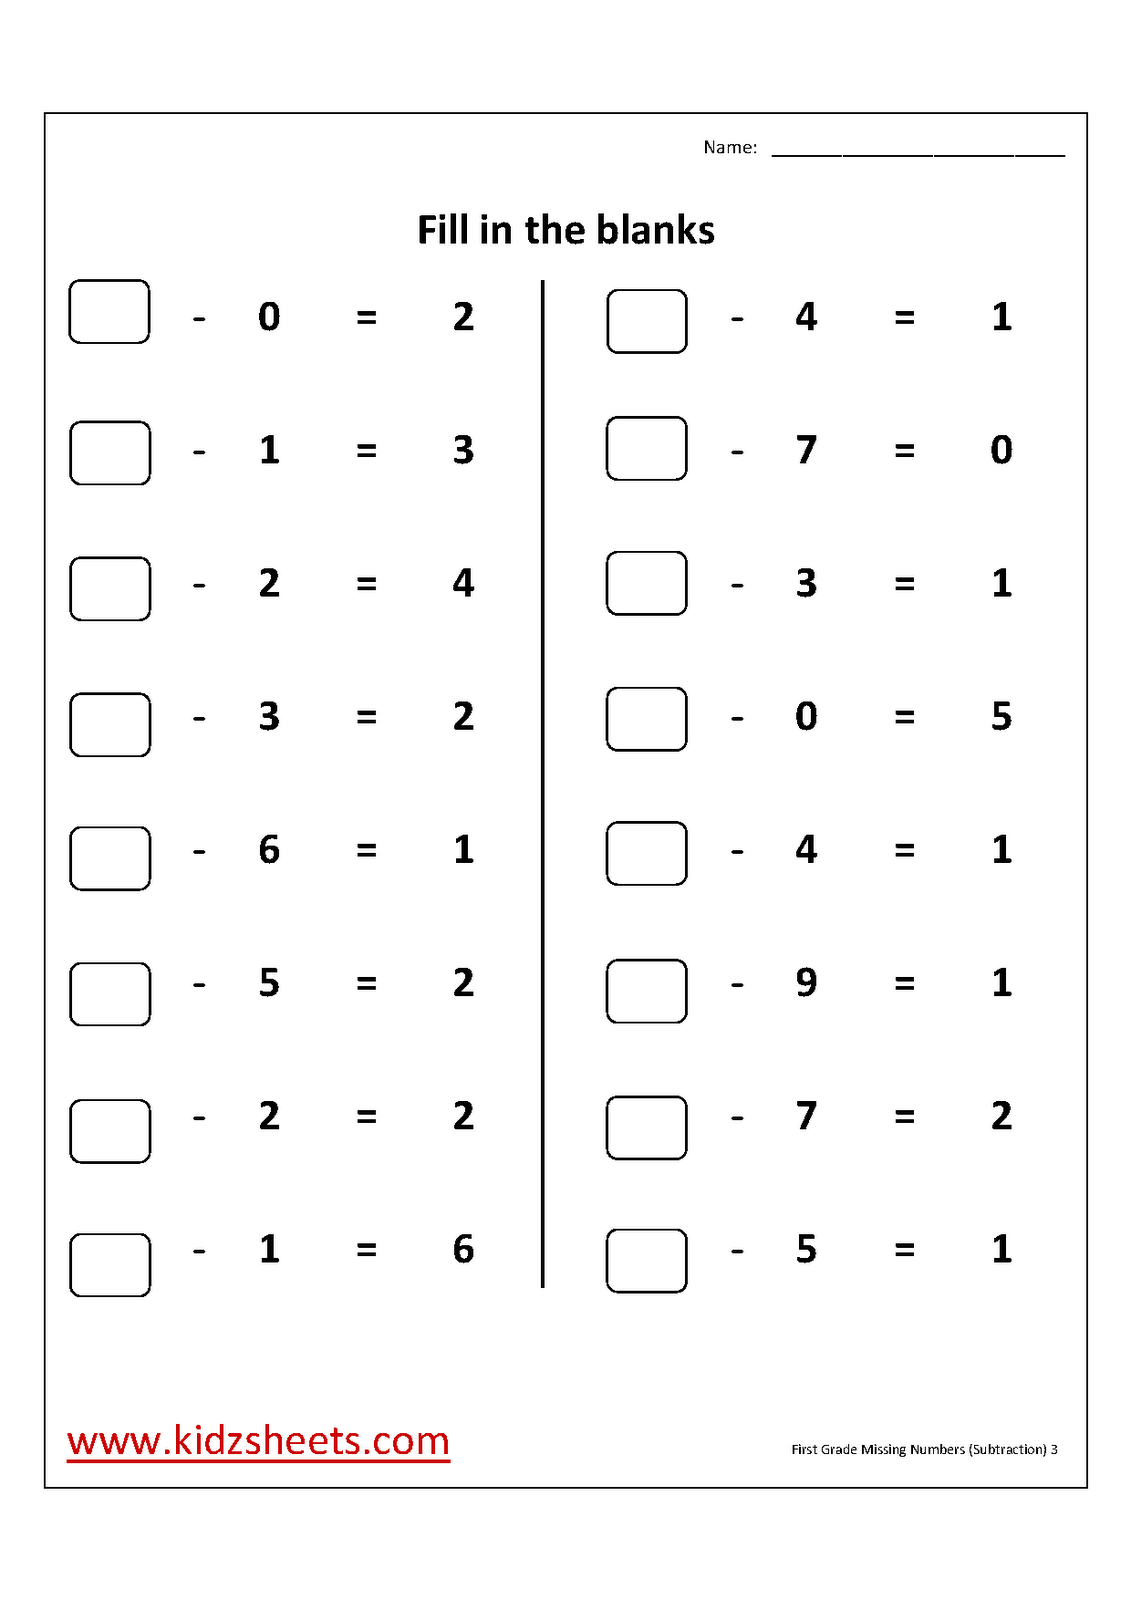 First Grade Missing Numbers